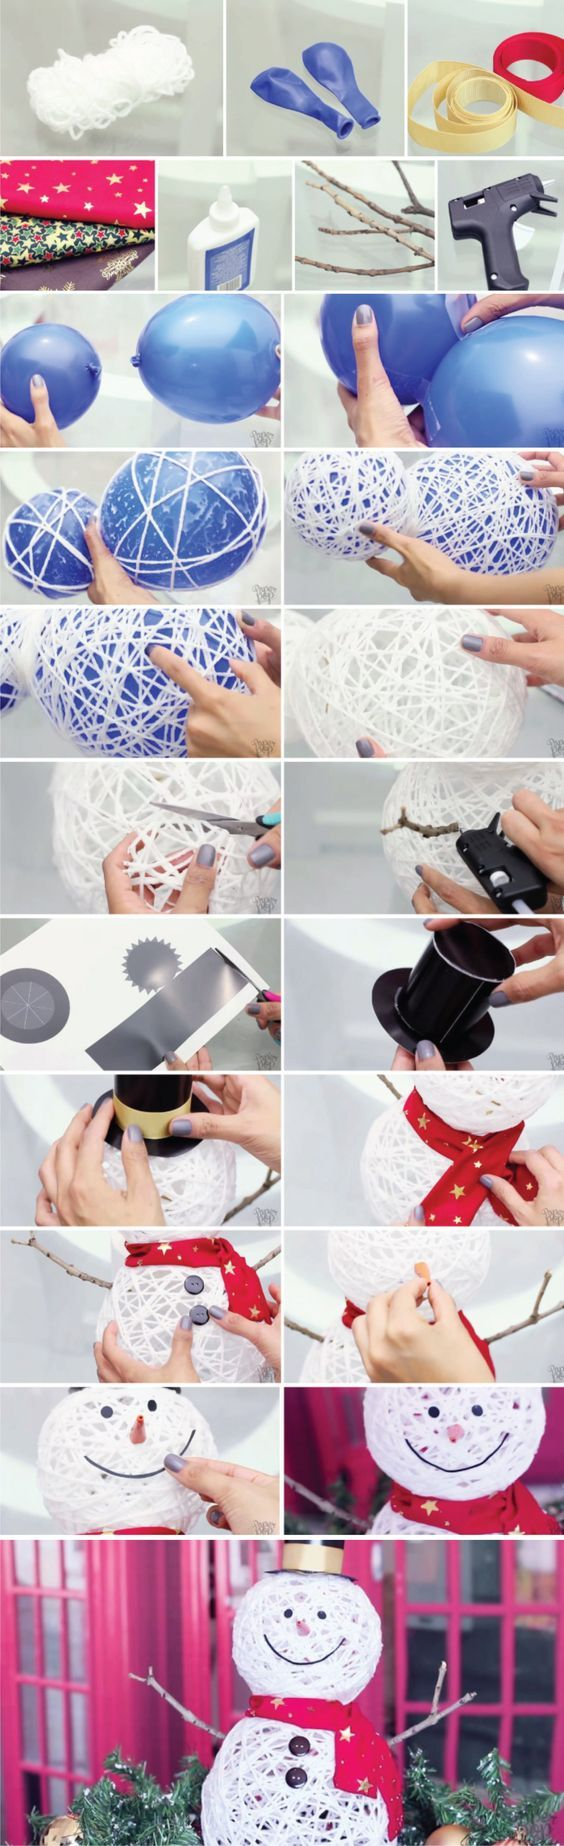 DIY Yarn or String Snowman via nopreach blog.  You will need Google Translate .